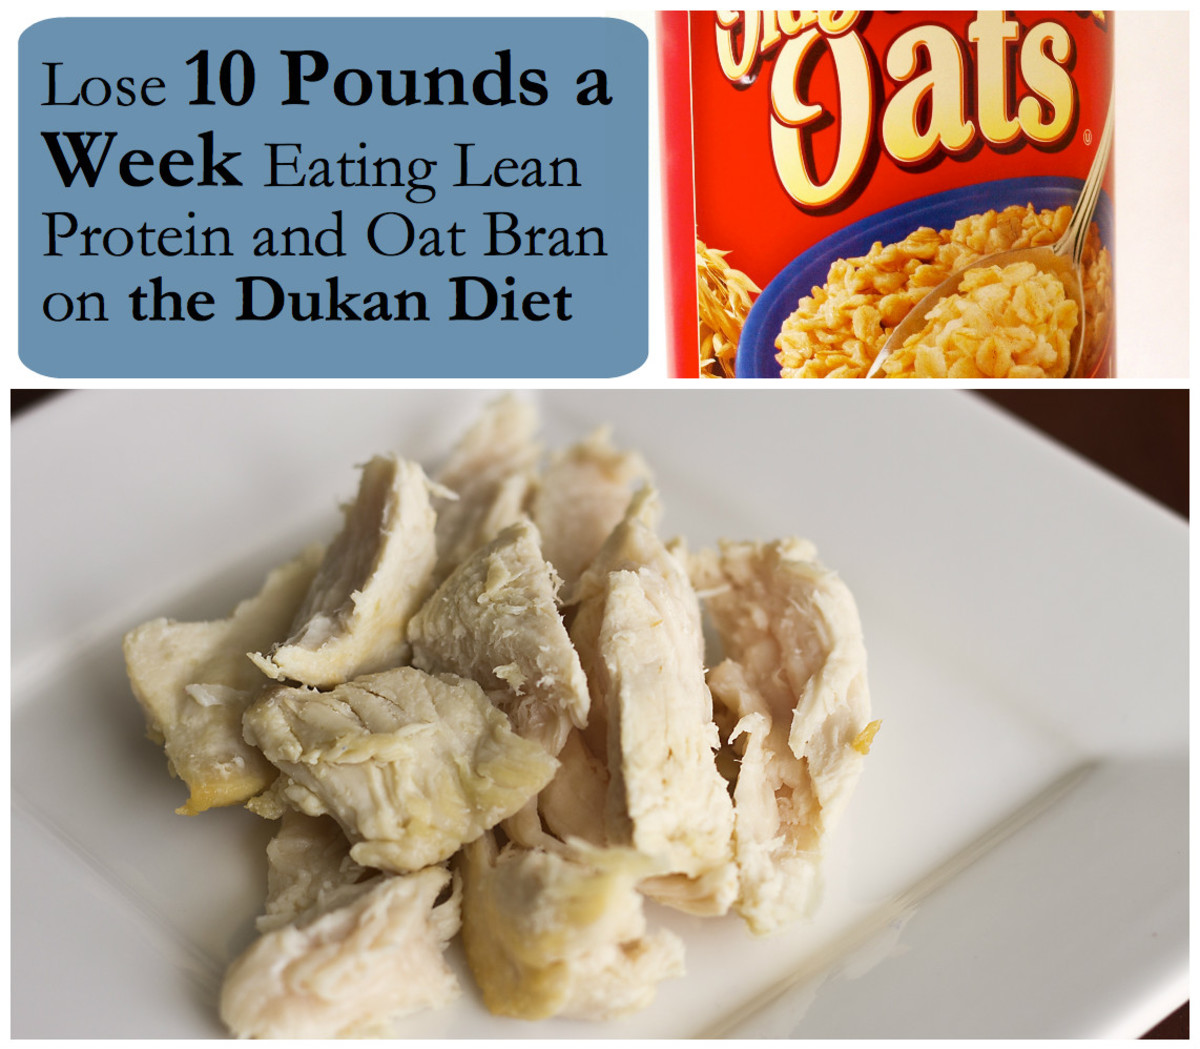 What is the essence of the method from Dukan